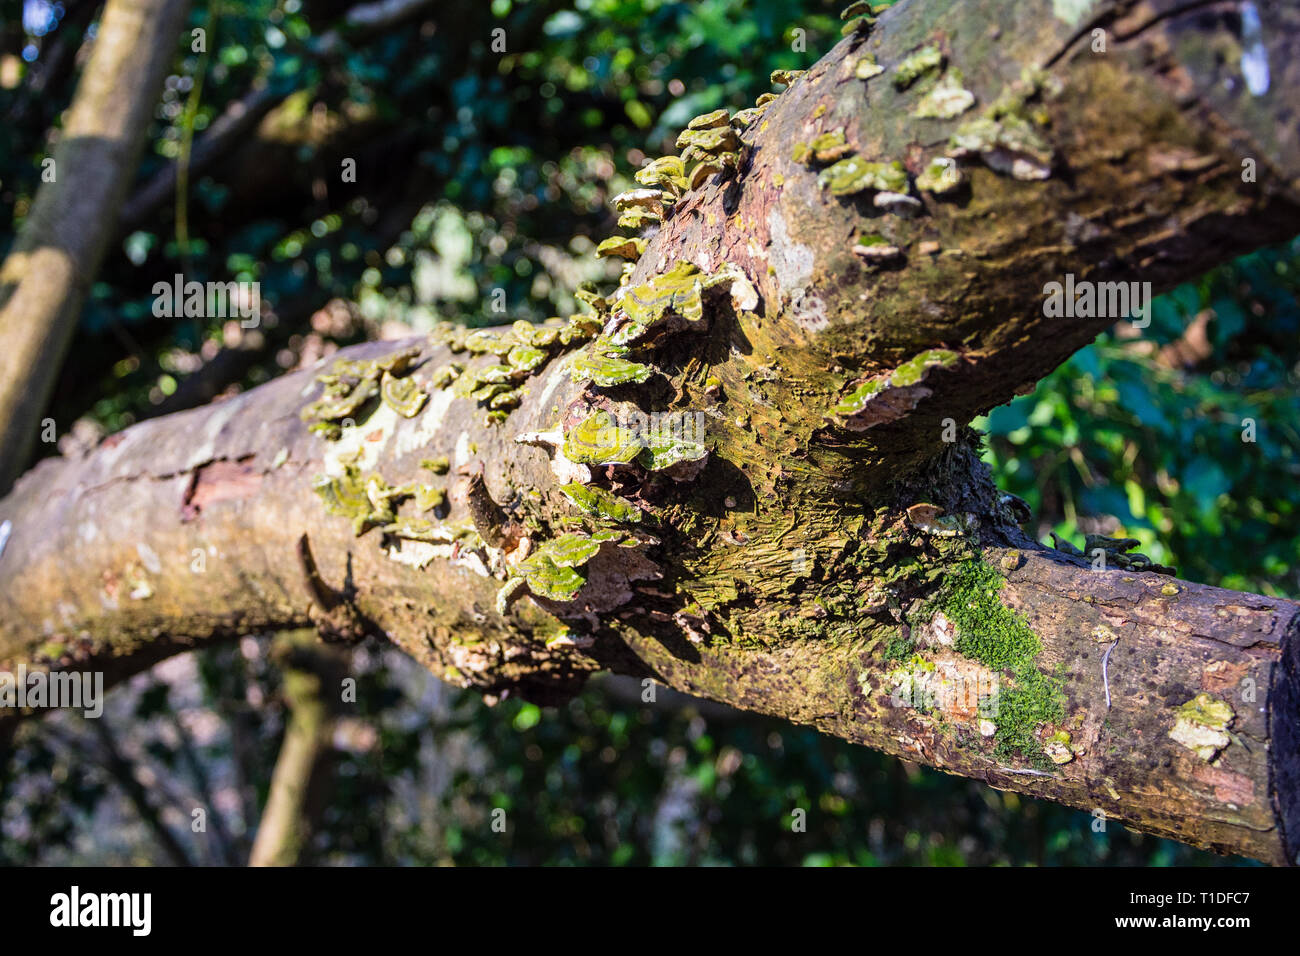 A branch previously cut from a tree with bracket fungi (probably Trametes versicolor) of green and yellow colouring growing from the decaying bark Stock Photo